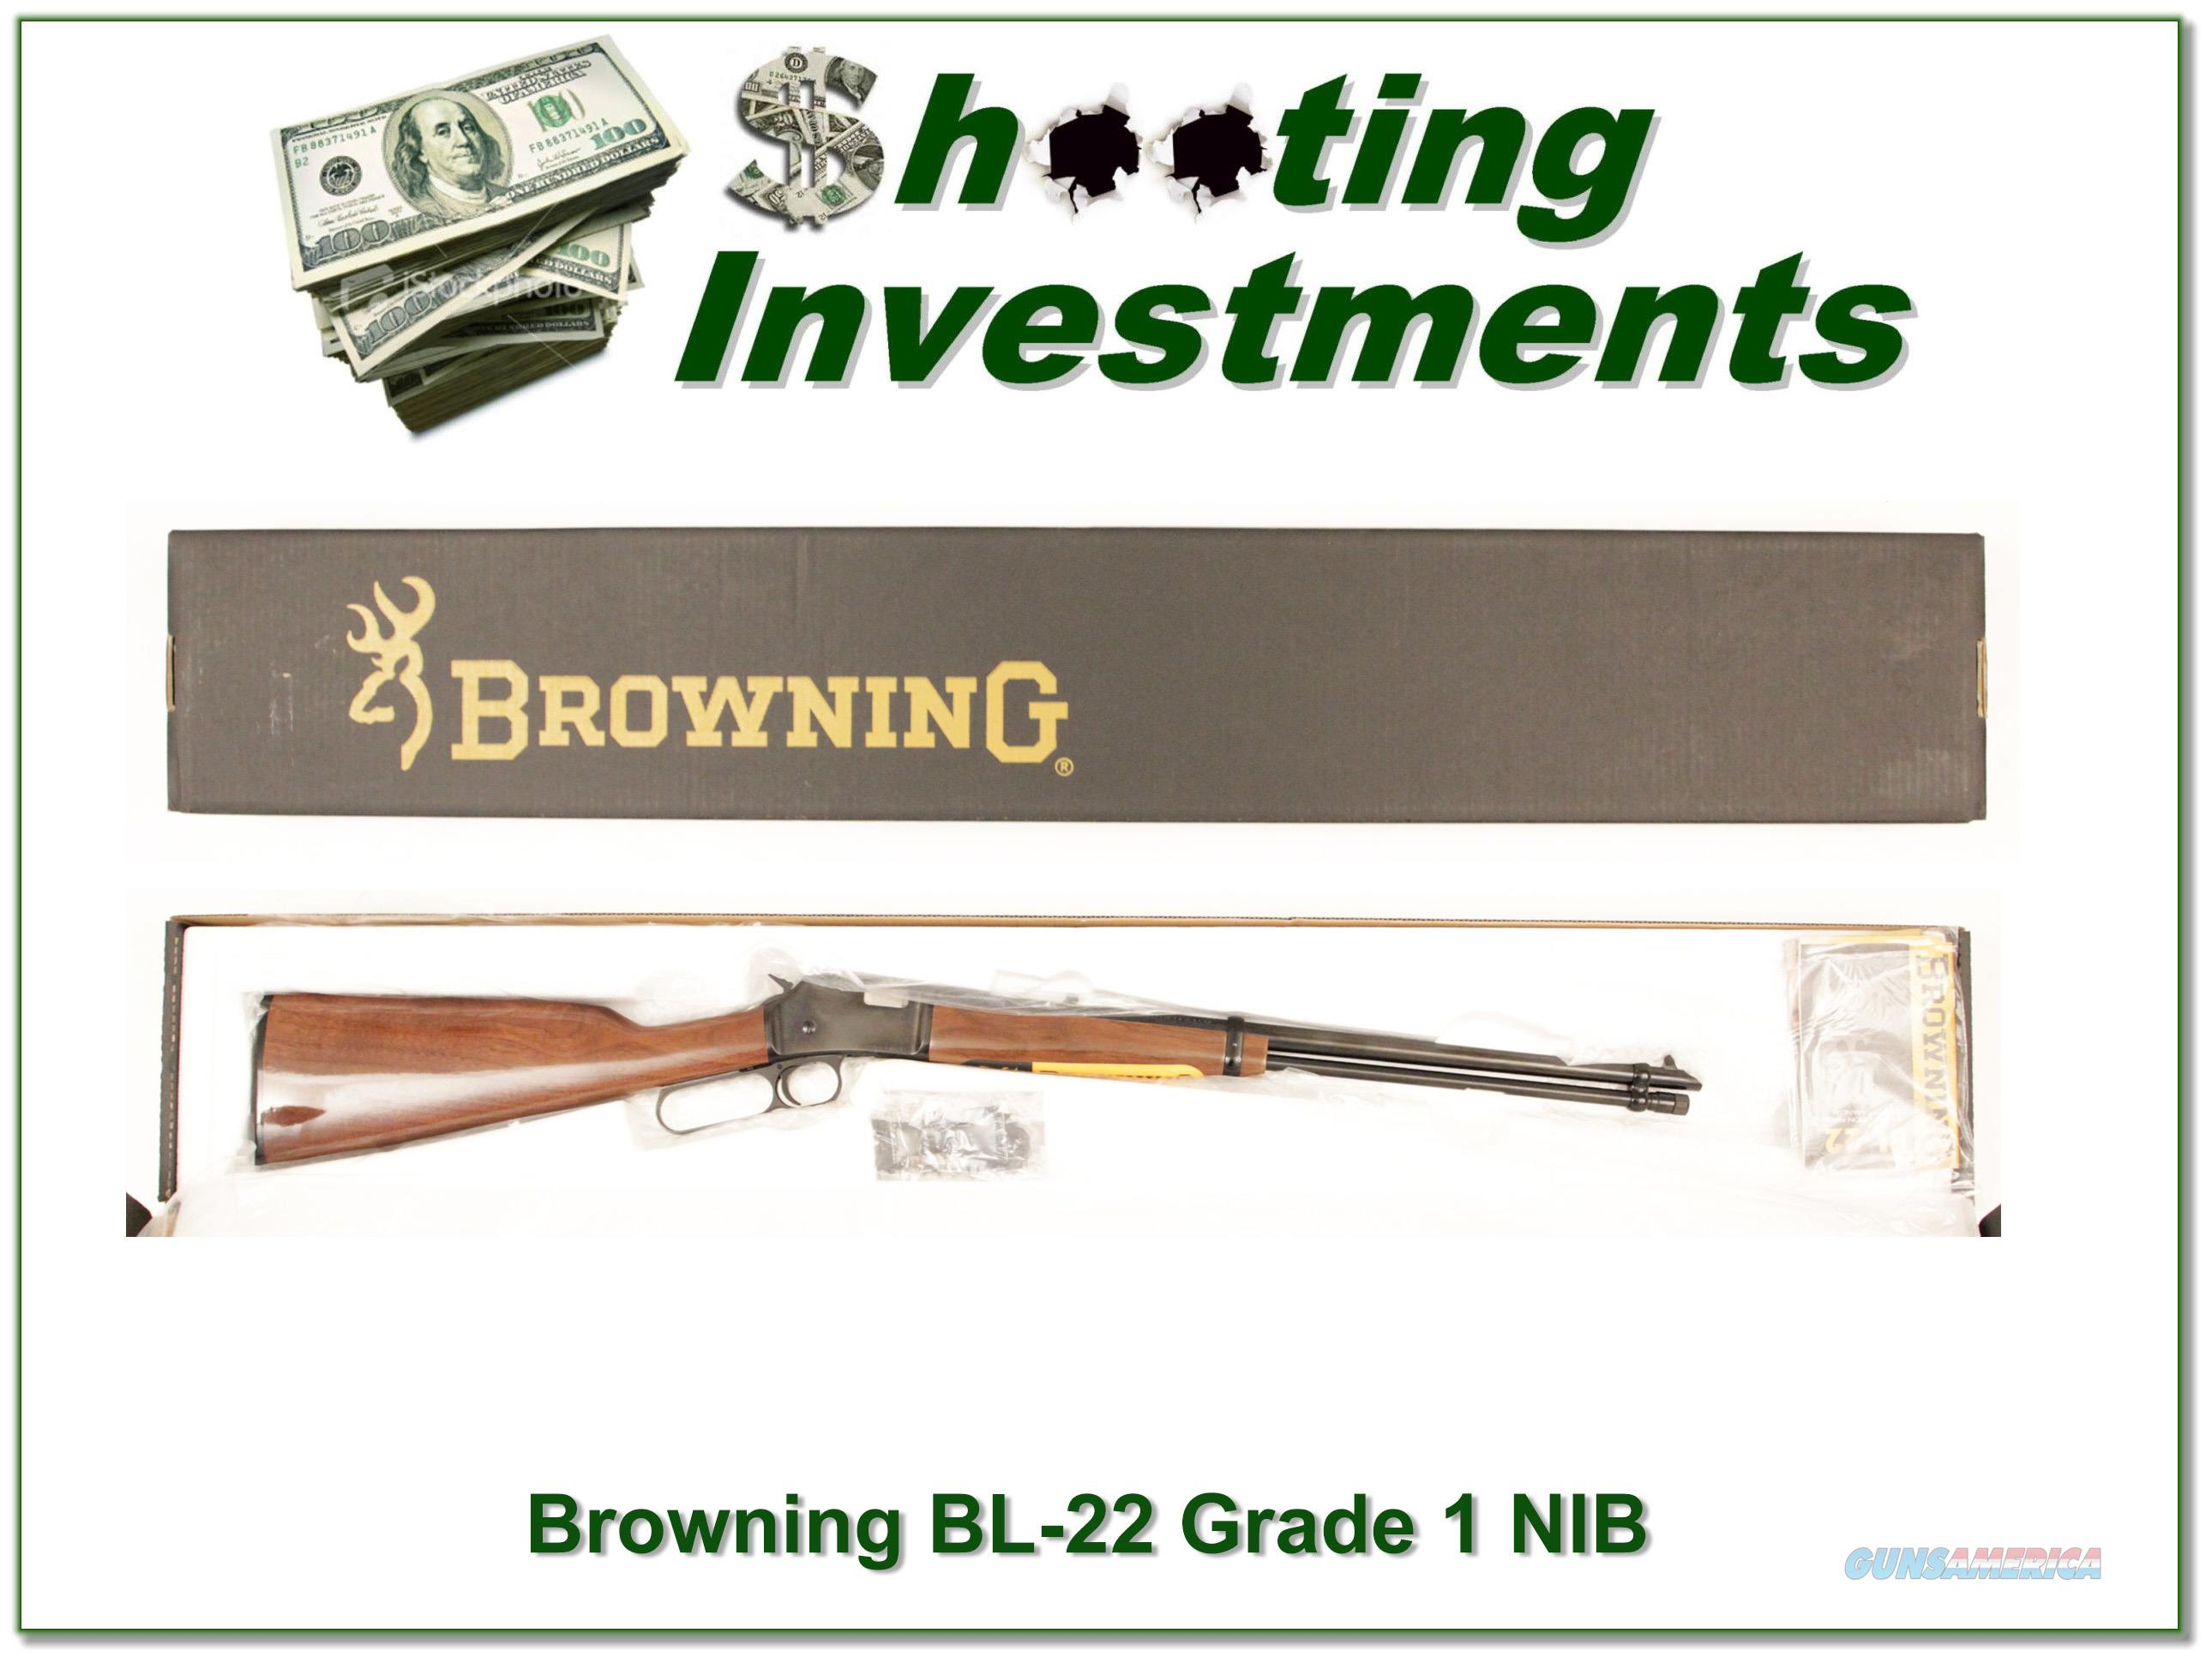 Browning BL-22 New in Box!  Guns > Rifles > Browning Rifles > Lever Action